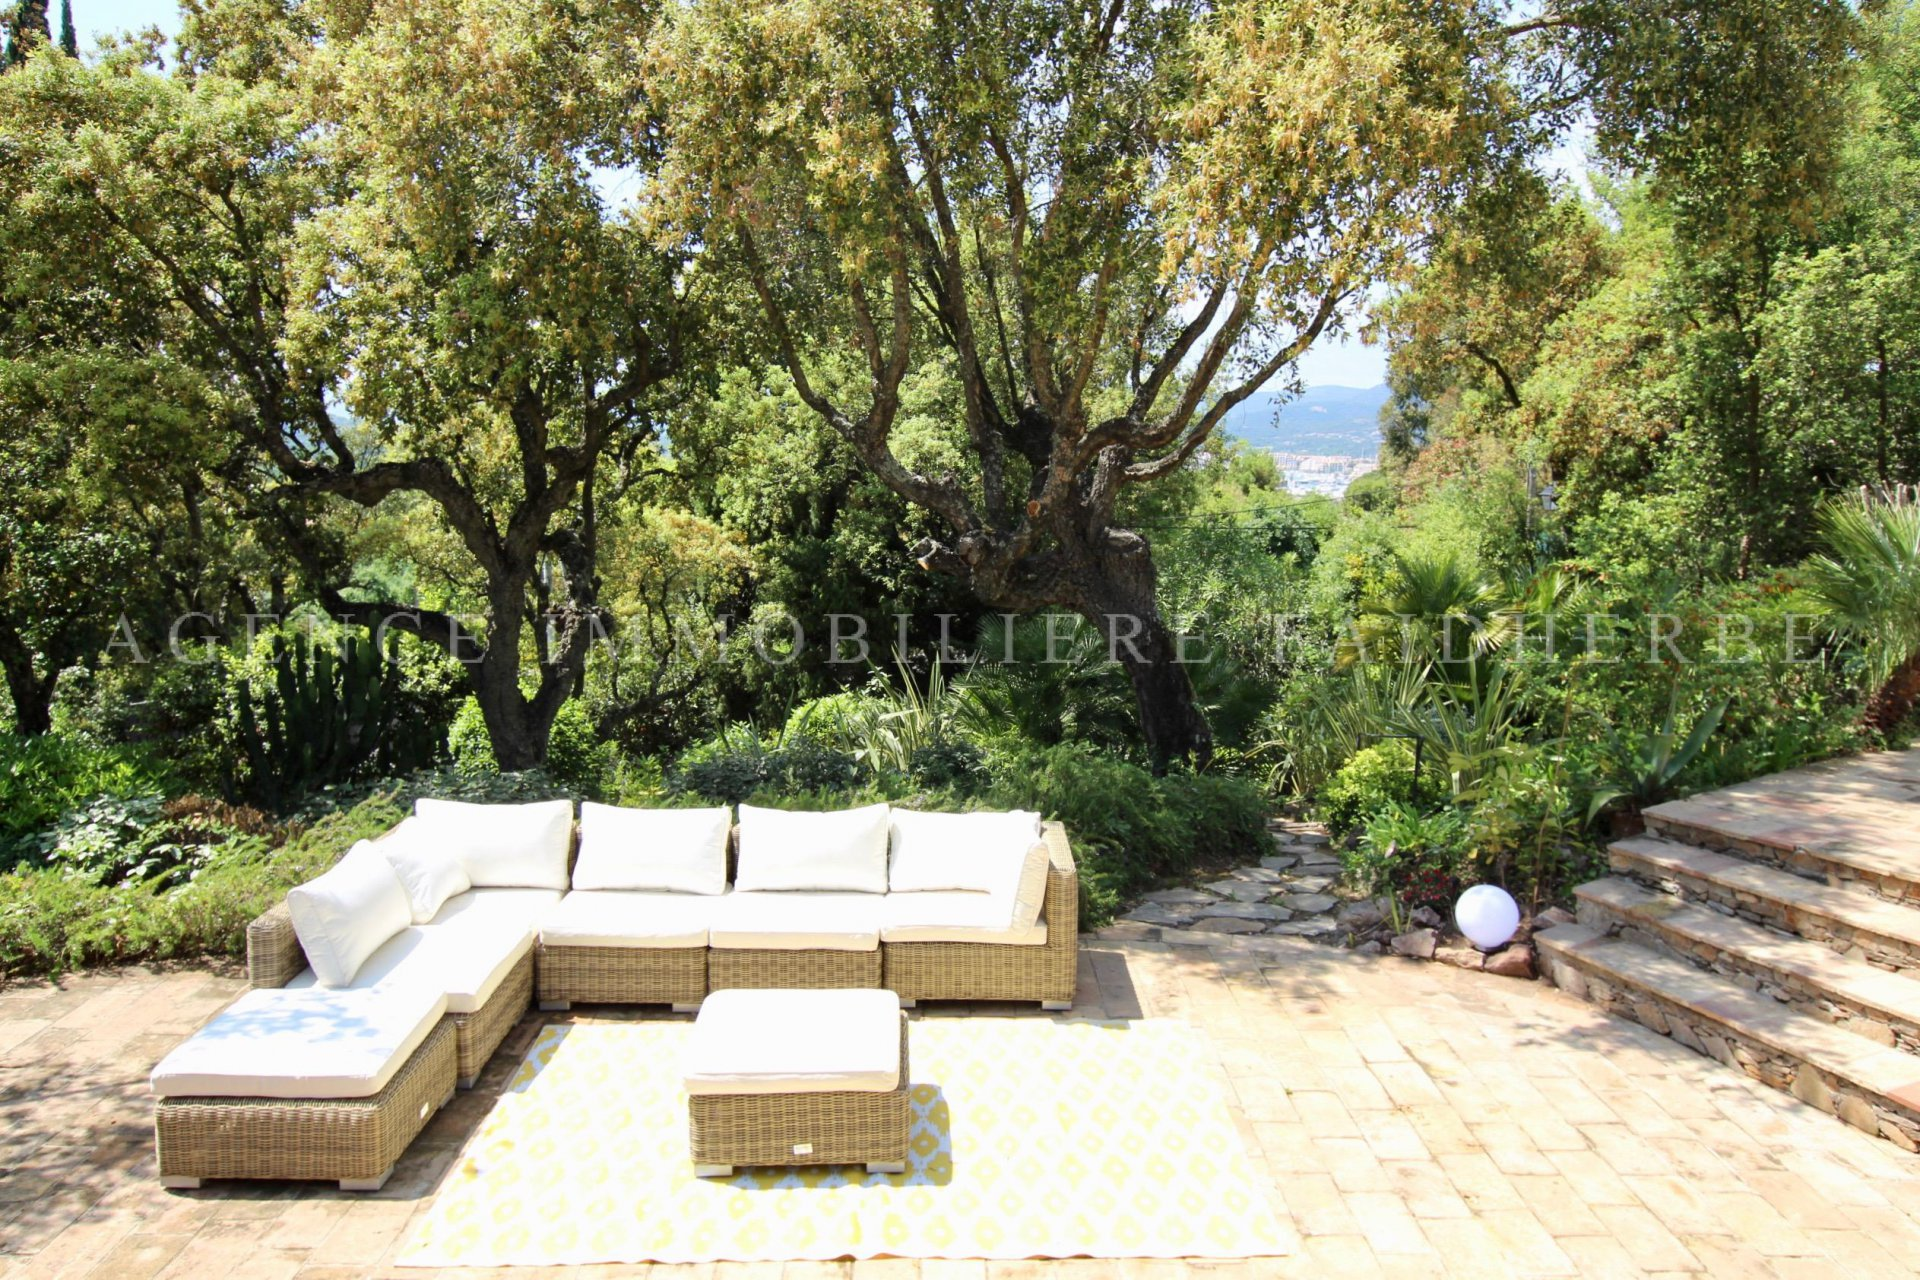 Authentic and provencal property